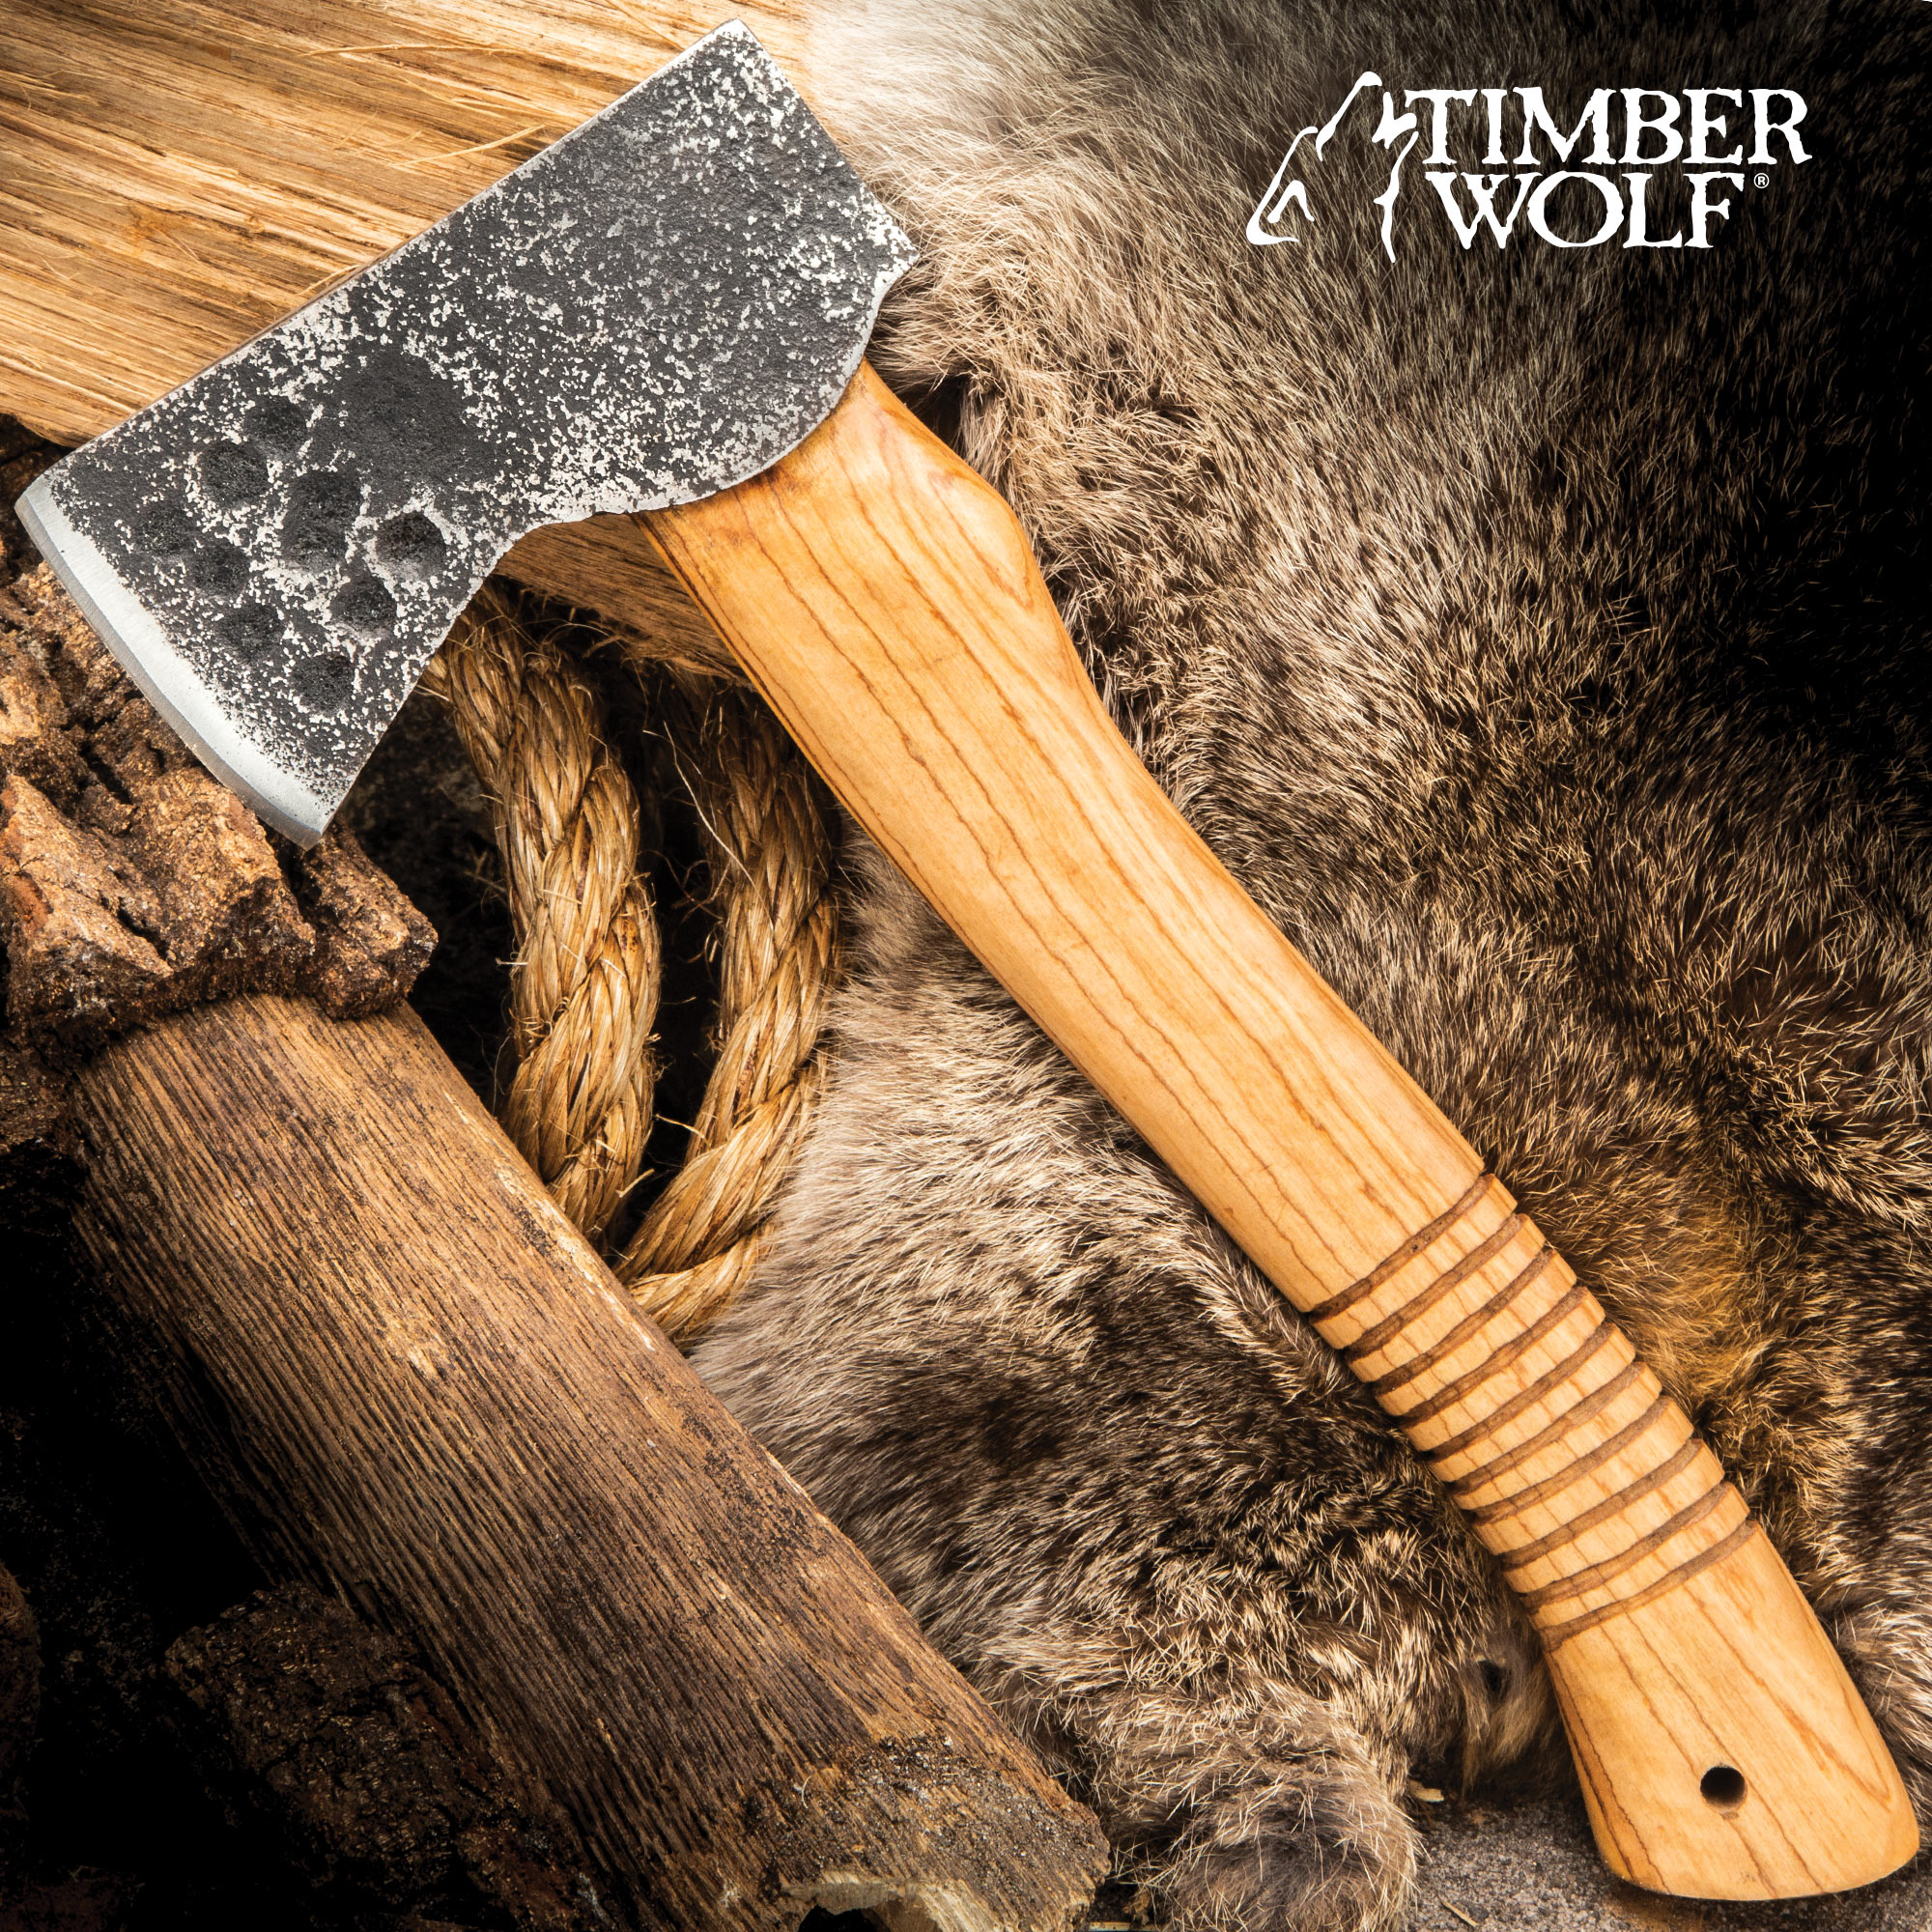 Timber Wolf Forged Carbon Bushcraft Axe - Carbon Steel Head